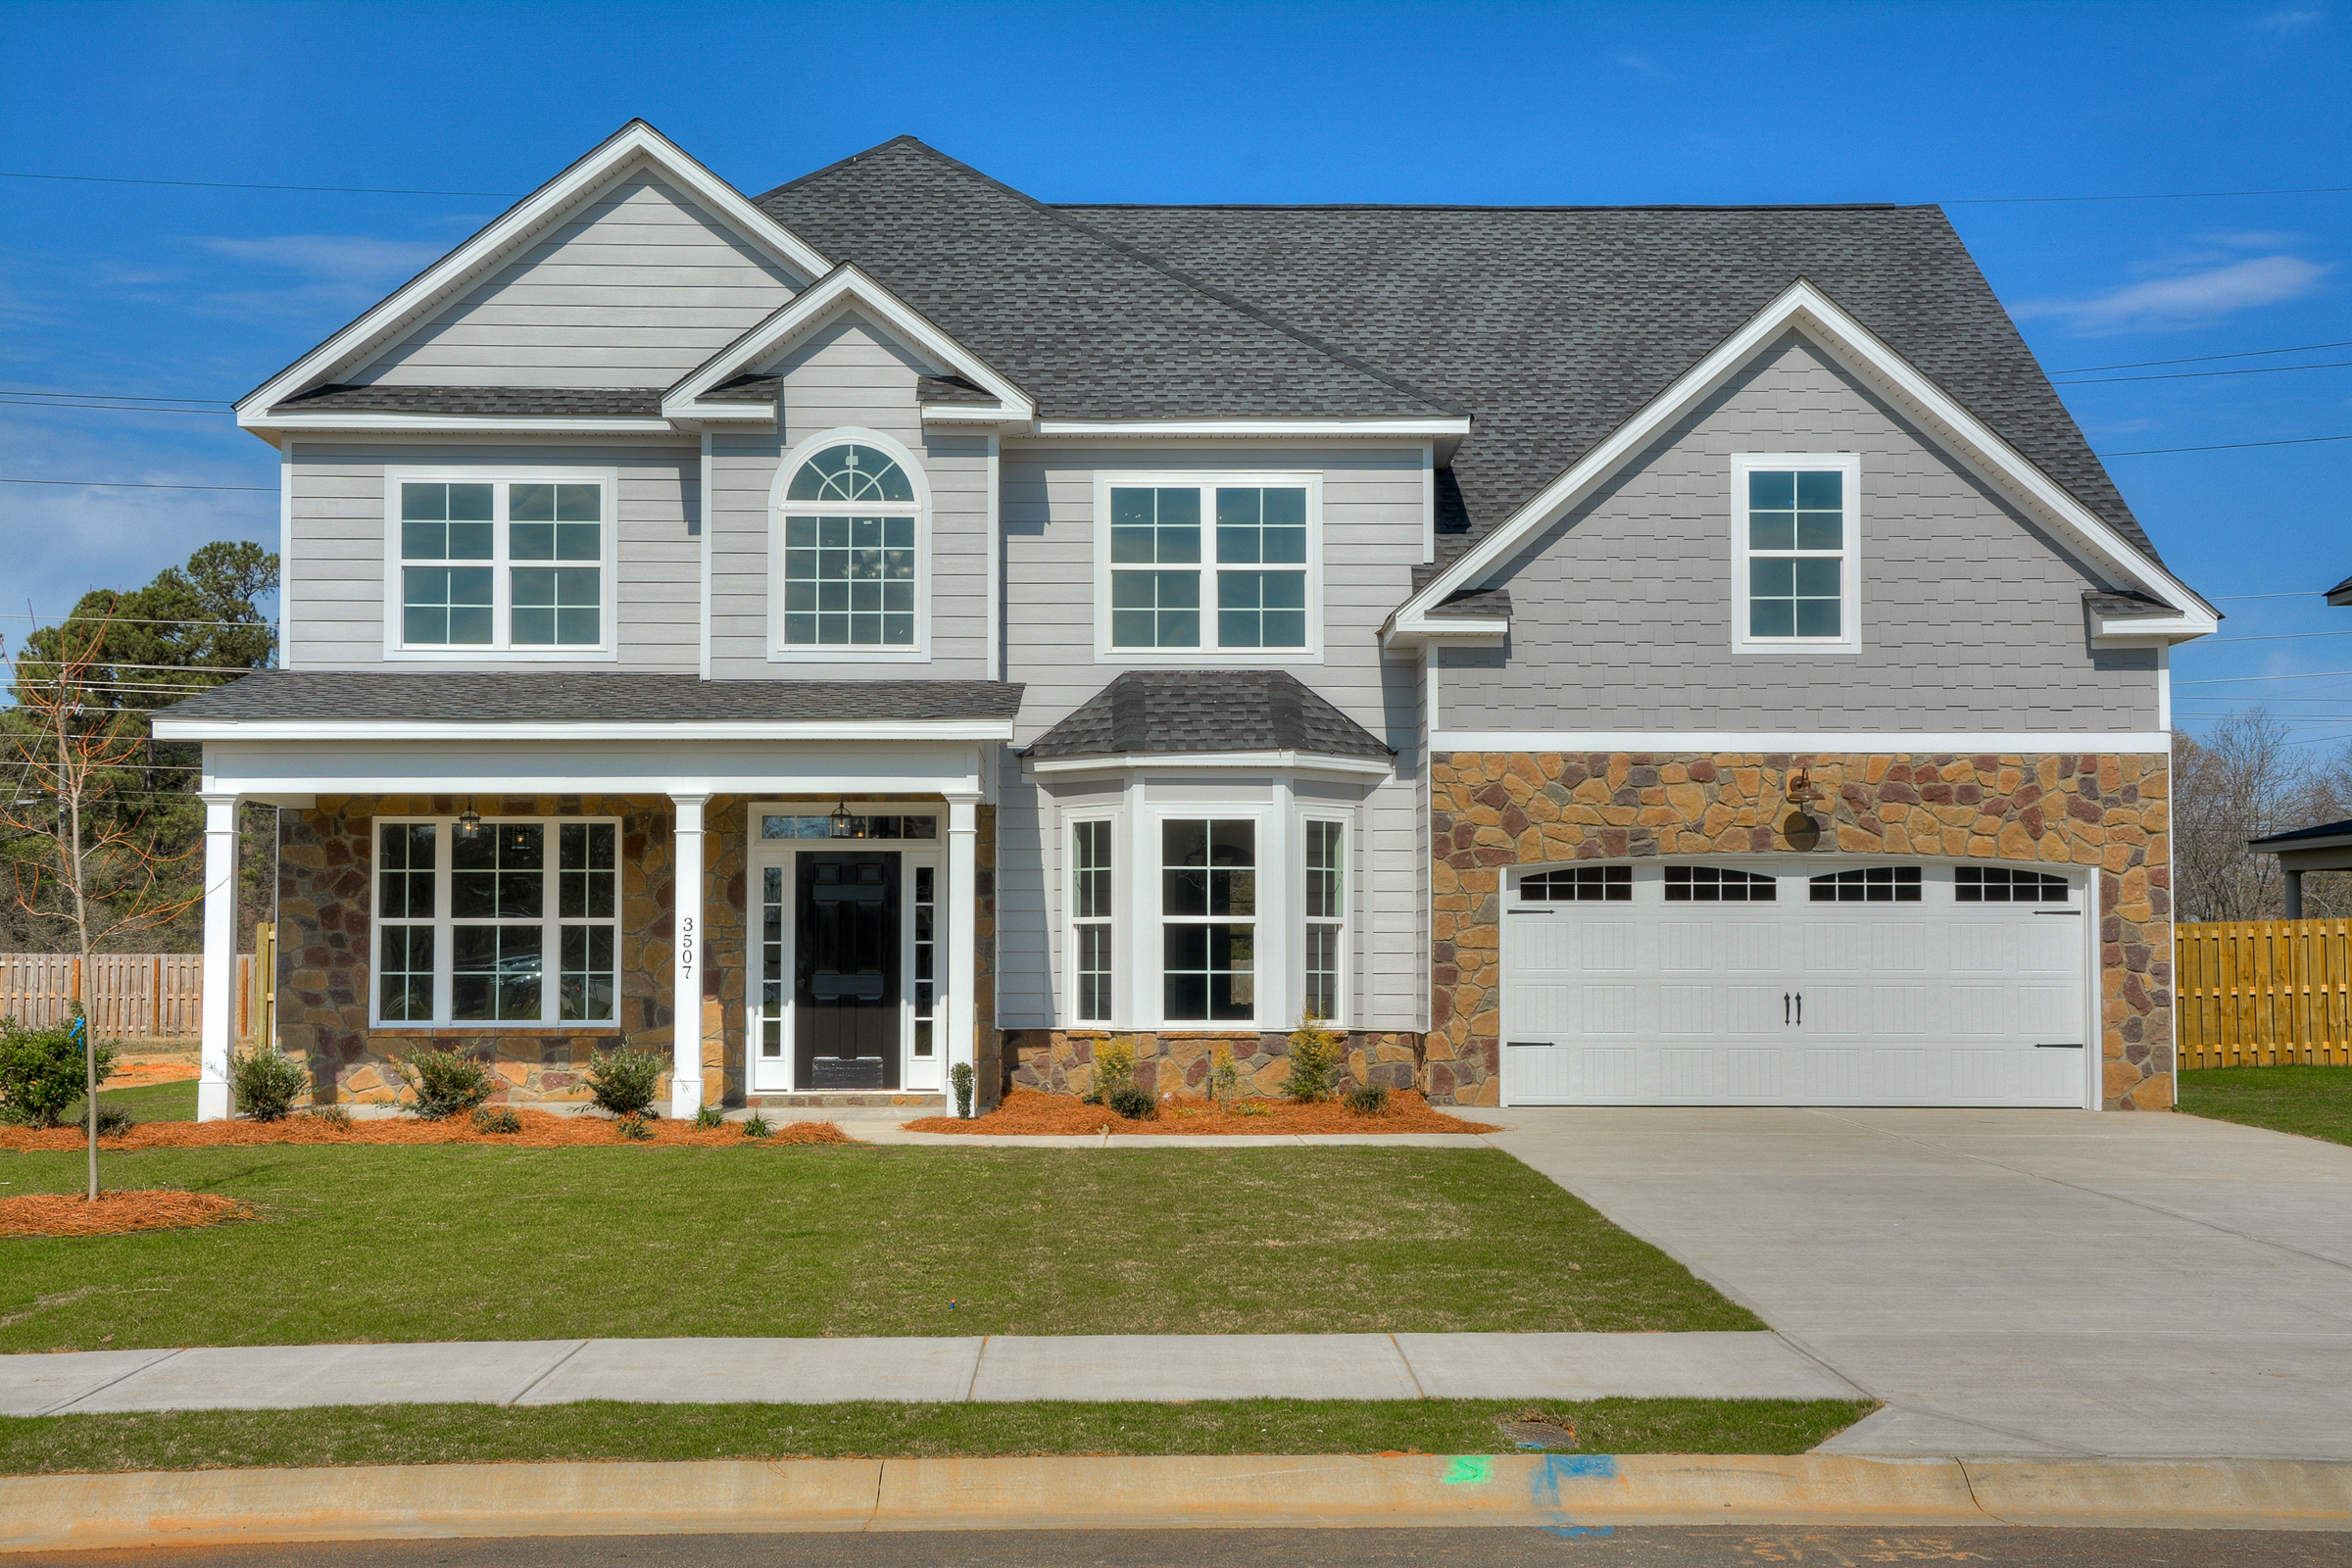 Custom home in evans ga first choice home builders home for First choice custom homes